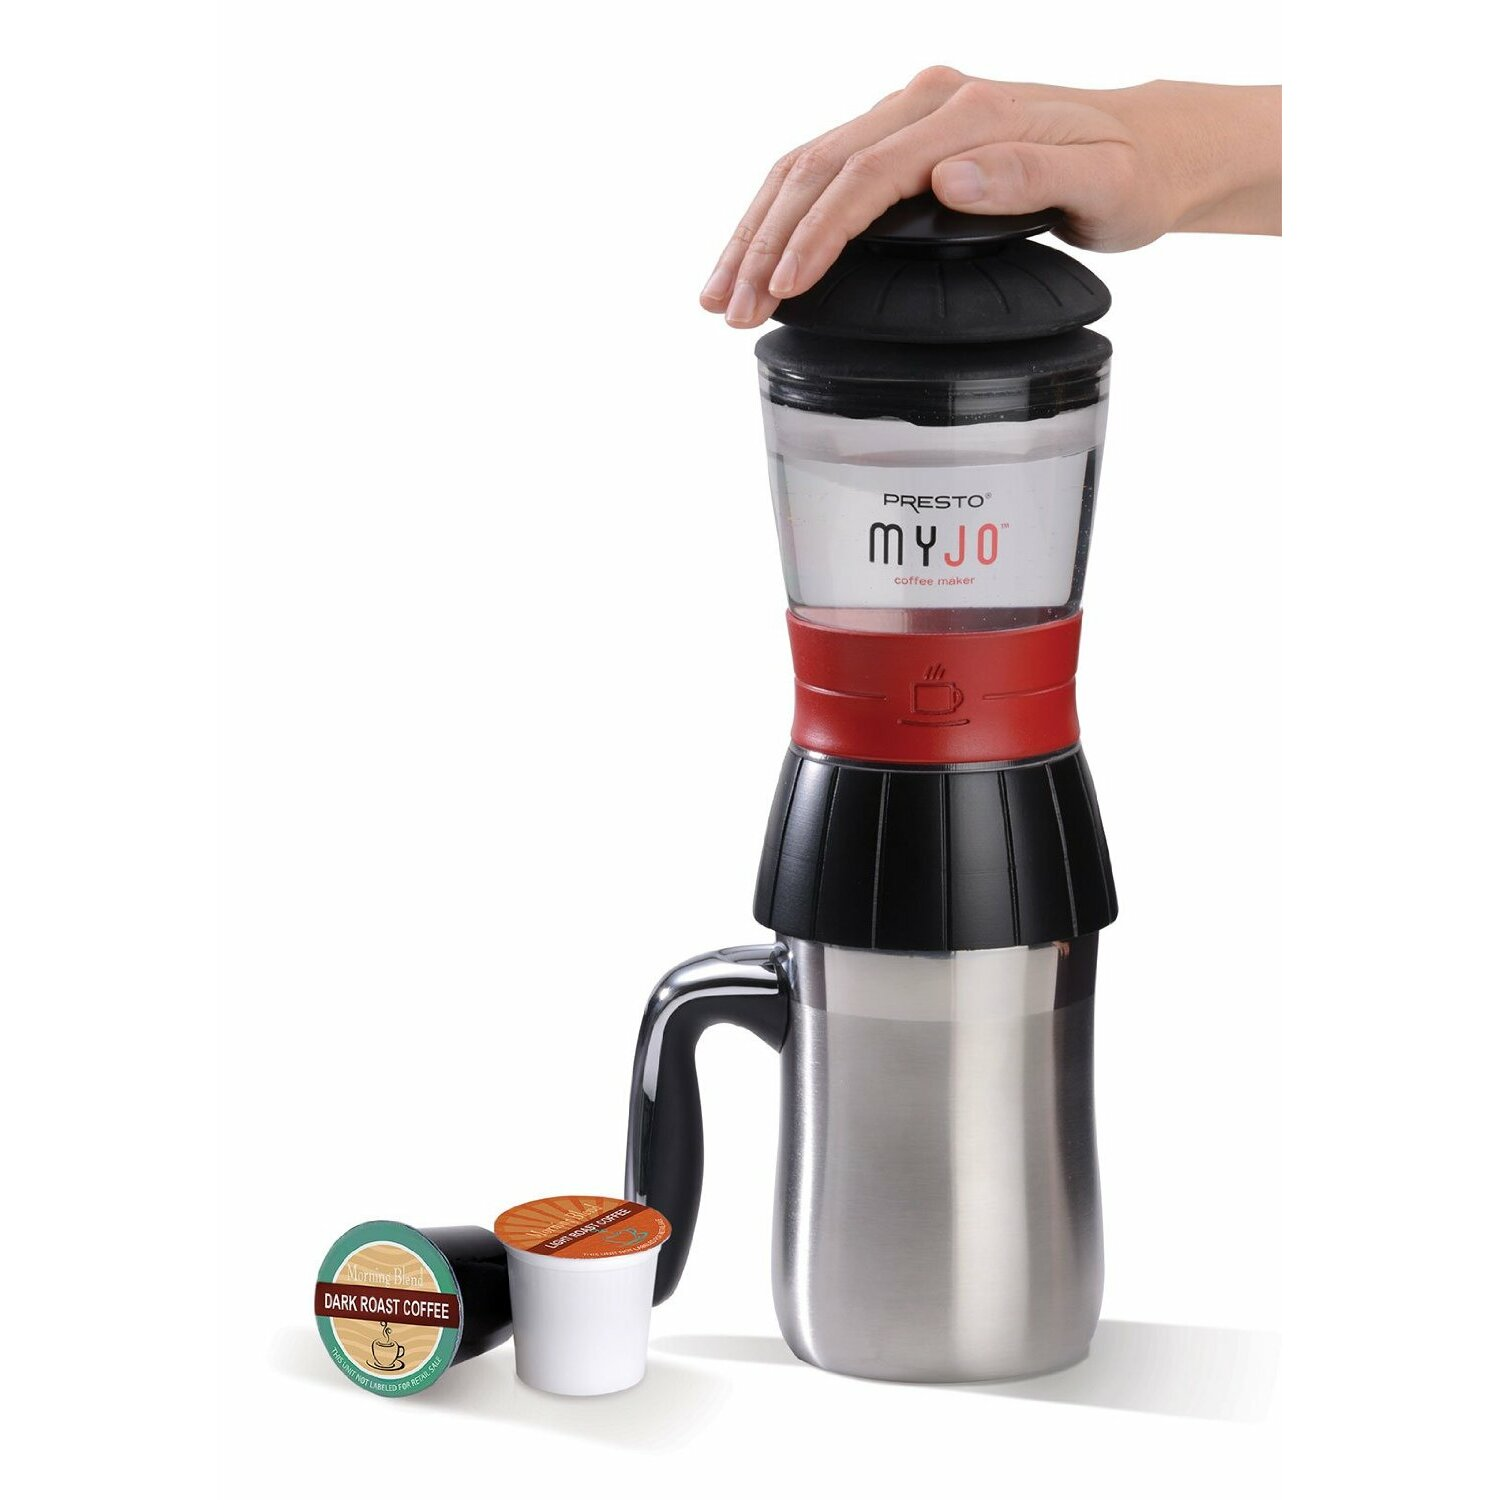 Presto myjo single cup coffee maker wayfair for Apartment size coffee maker